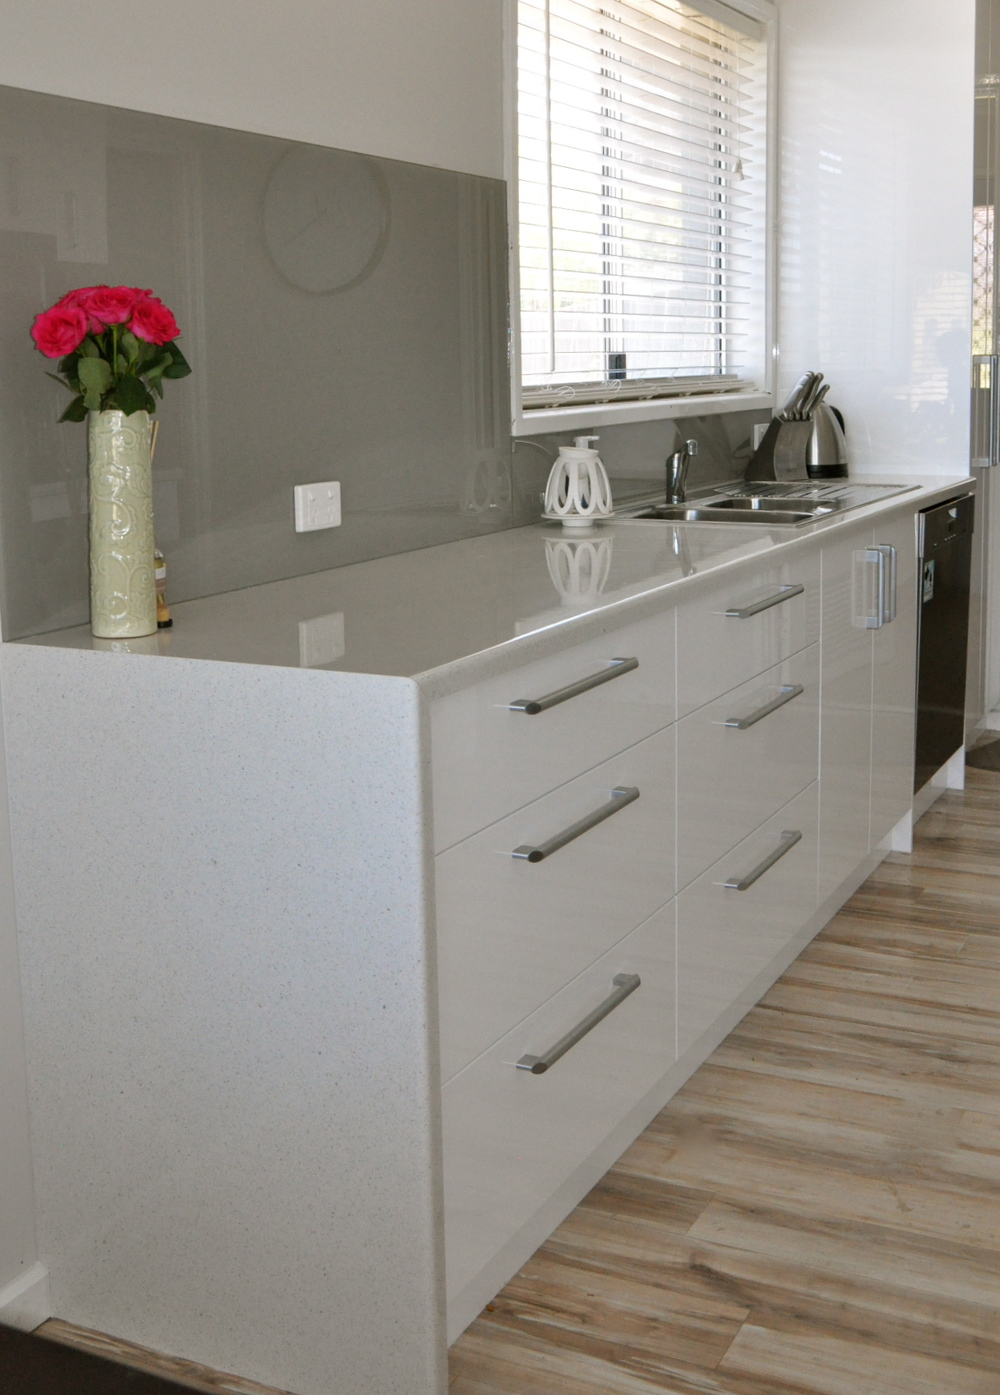 infinity kitchens joinery canberra kitchen renovations